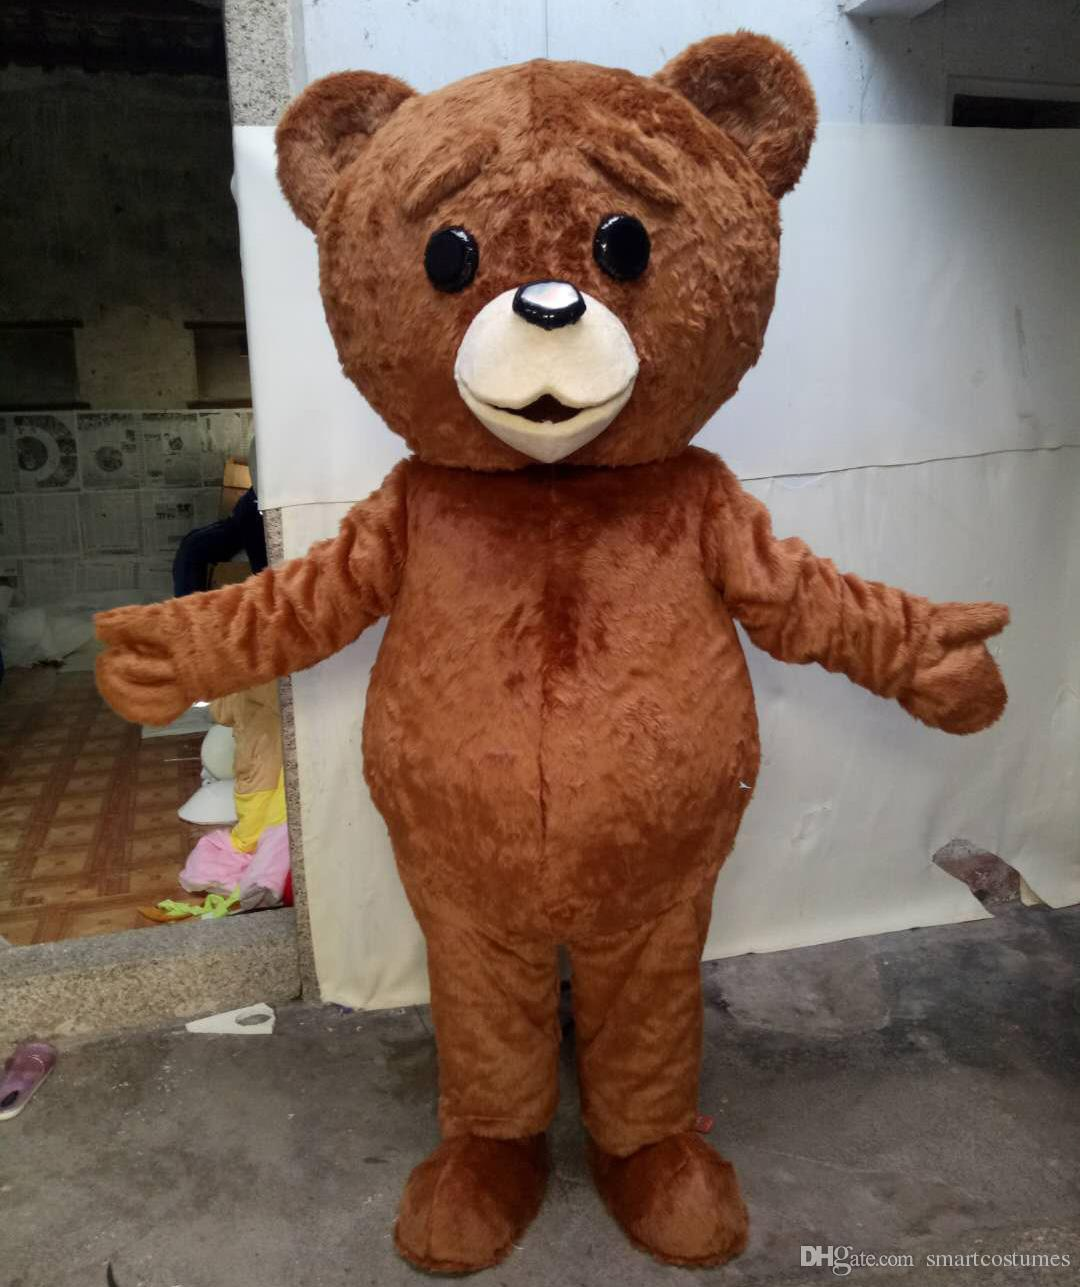 100% Real Photos of Furry Brown Colour Teddy Bear Mascot Costume for Adults to Wear for Sale Teddy Bear Costume Adult Teddy Bear Costume Teddy Bear Mascot ... & 100% Real Photos of Furry Brown Colour Teddy Bear Mascot Costume for ...